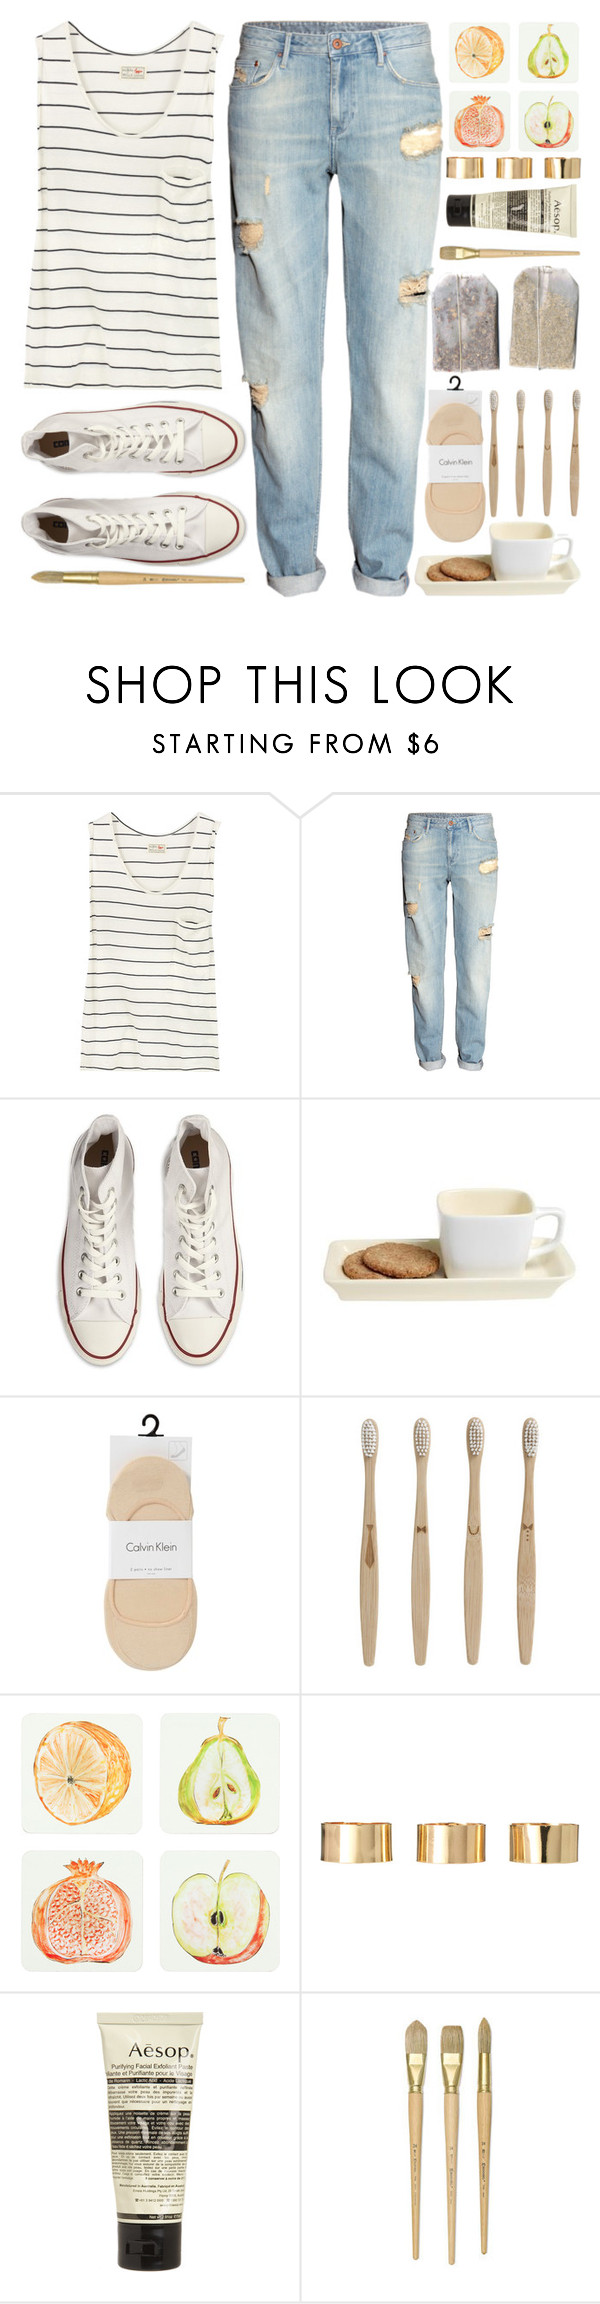 """""""Converse"""" by berina-2000 ❤ liked on Polyvore featuring Aubin & Wills, H&M, Converse, Calvin Klein, ferm LIVING, Zara Home, ASOS and Aesop"""